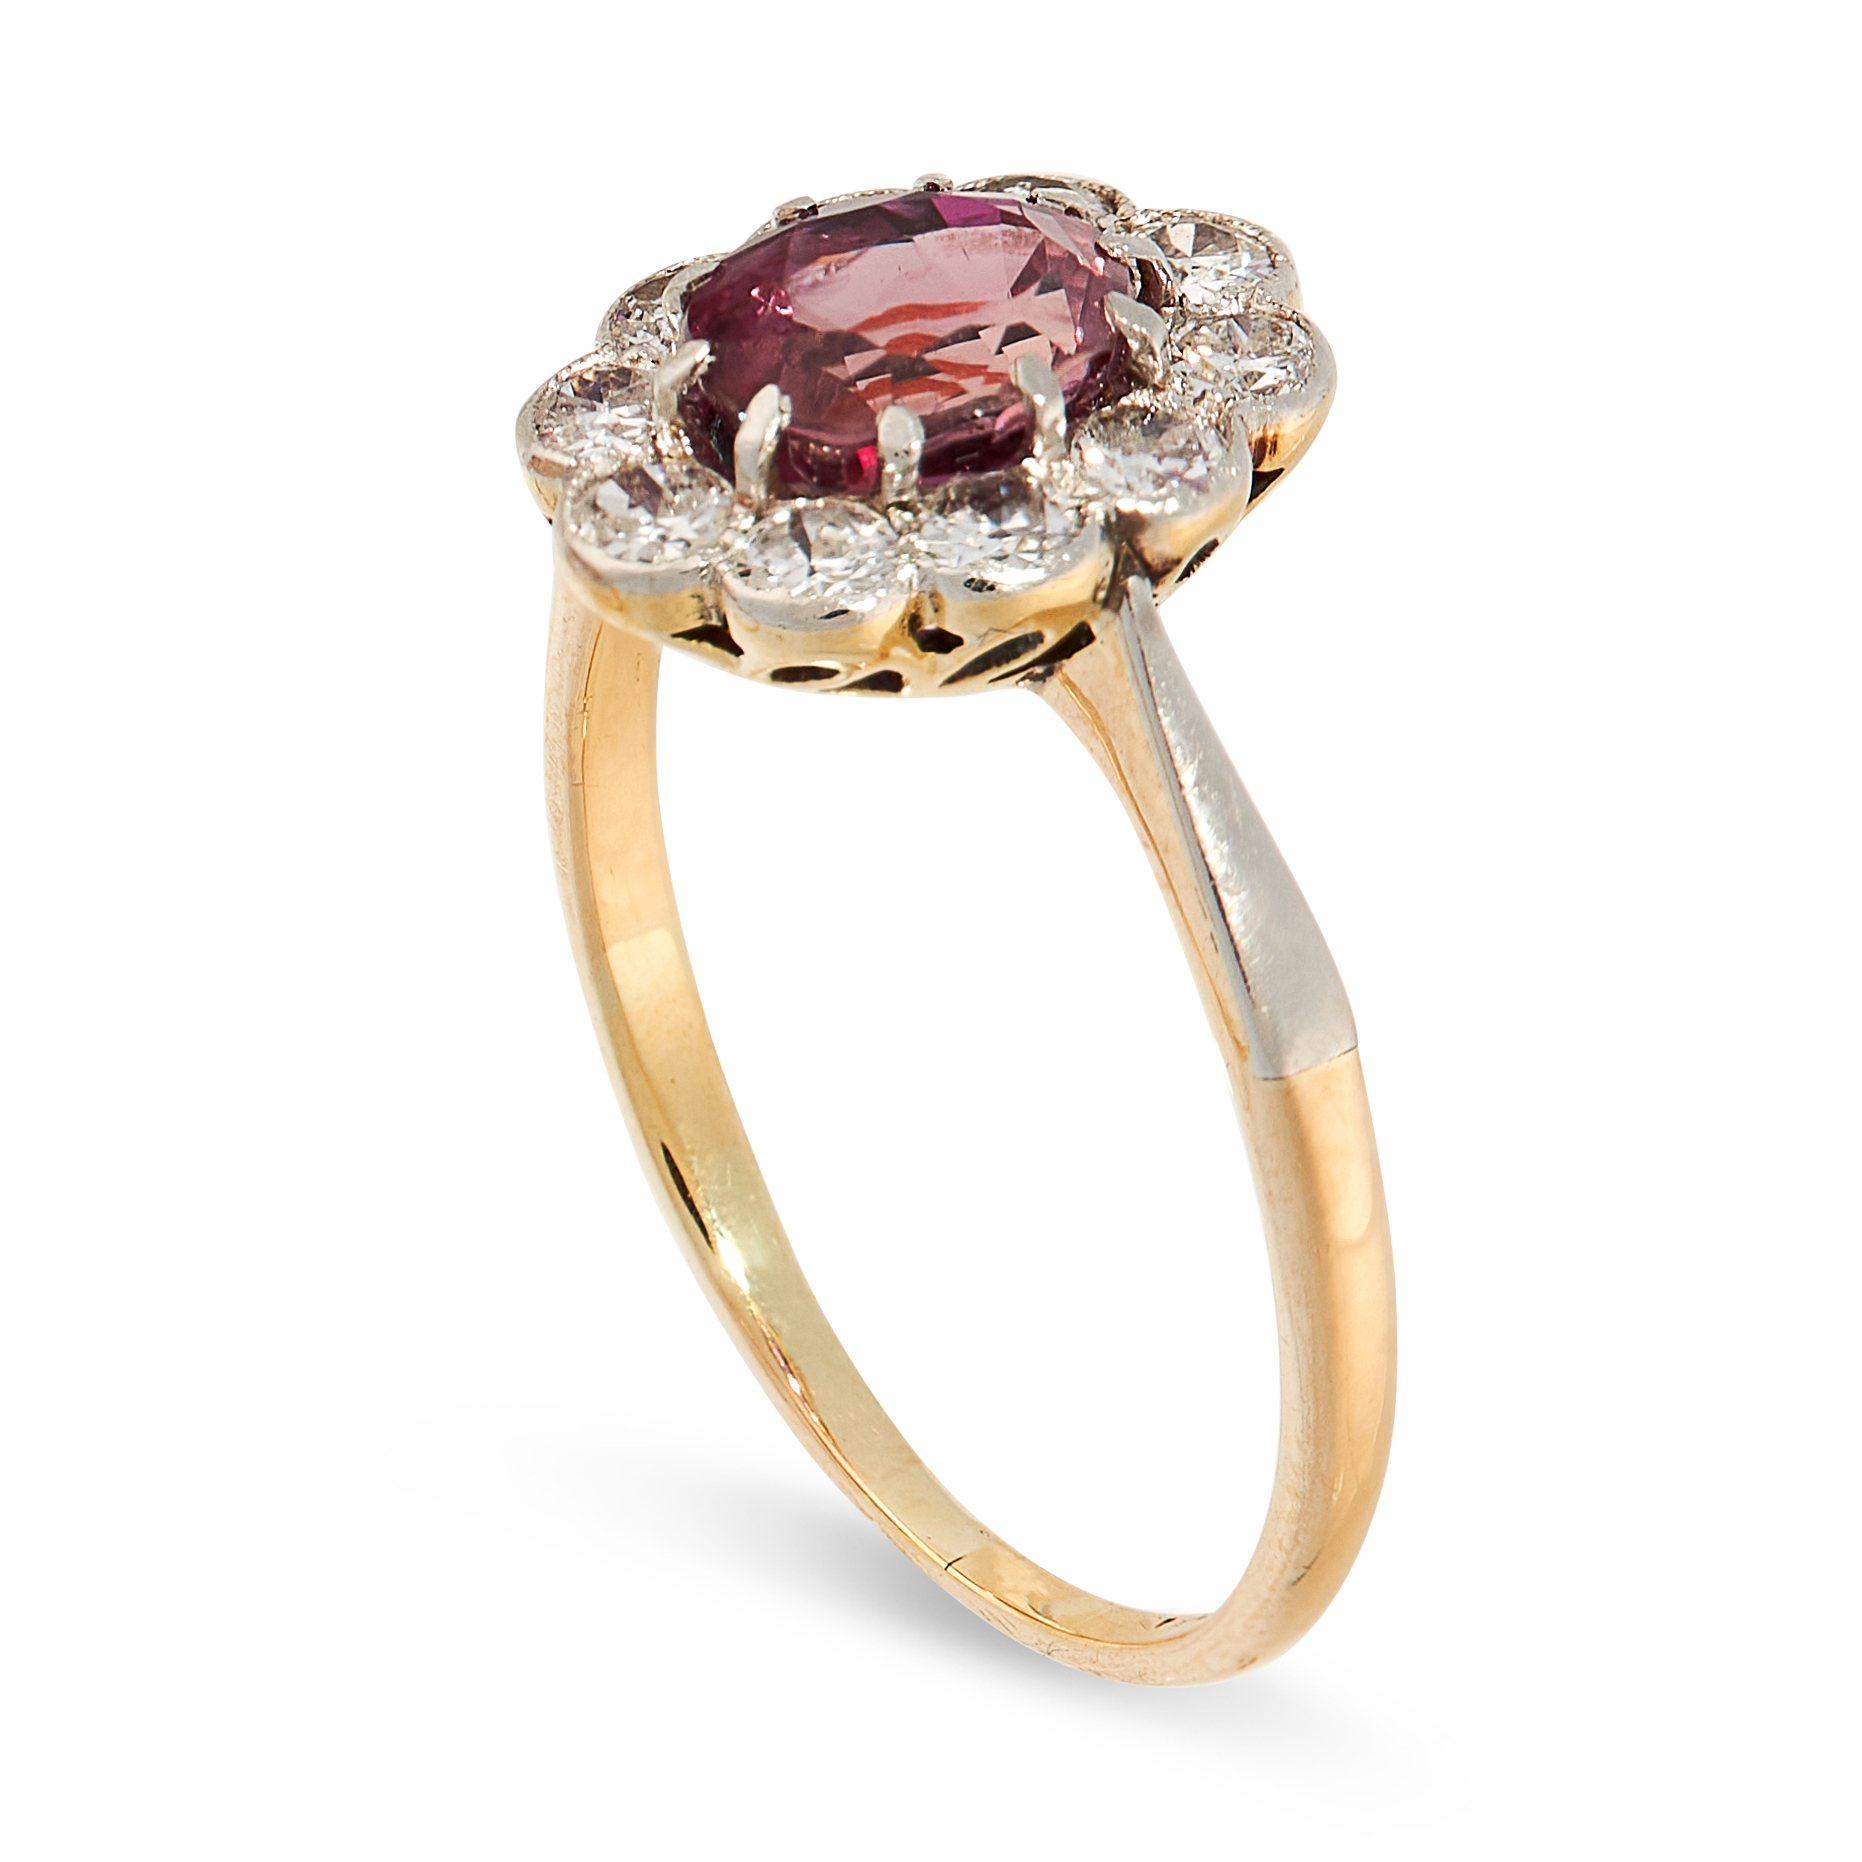 AN UNHEATED RUBY AND DIAMOND RING in 18ct yellow gold, set with an oval cut ruby of 1.42 carats, - Image 2 of 2